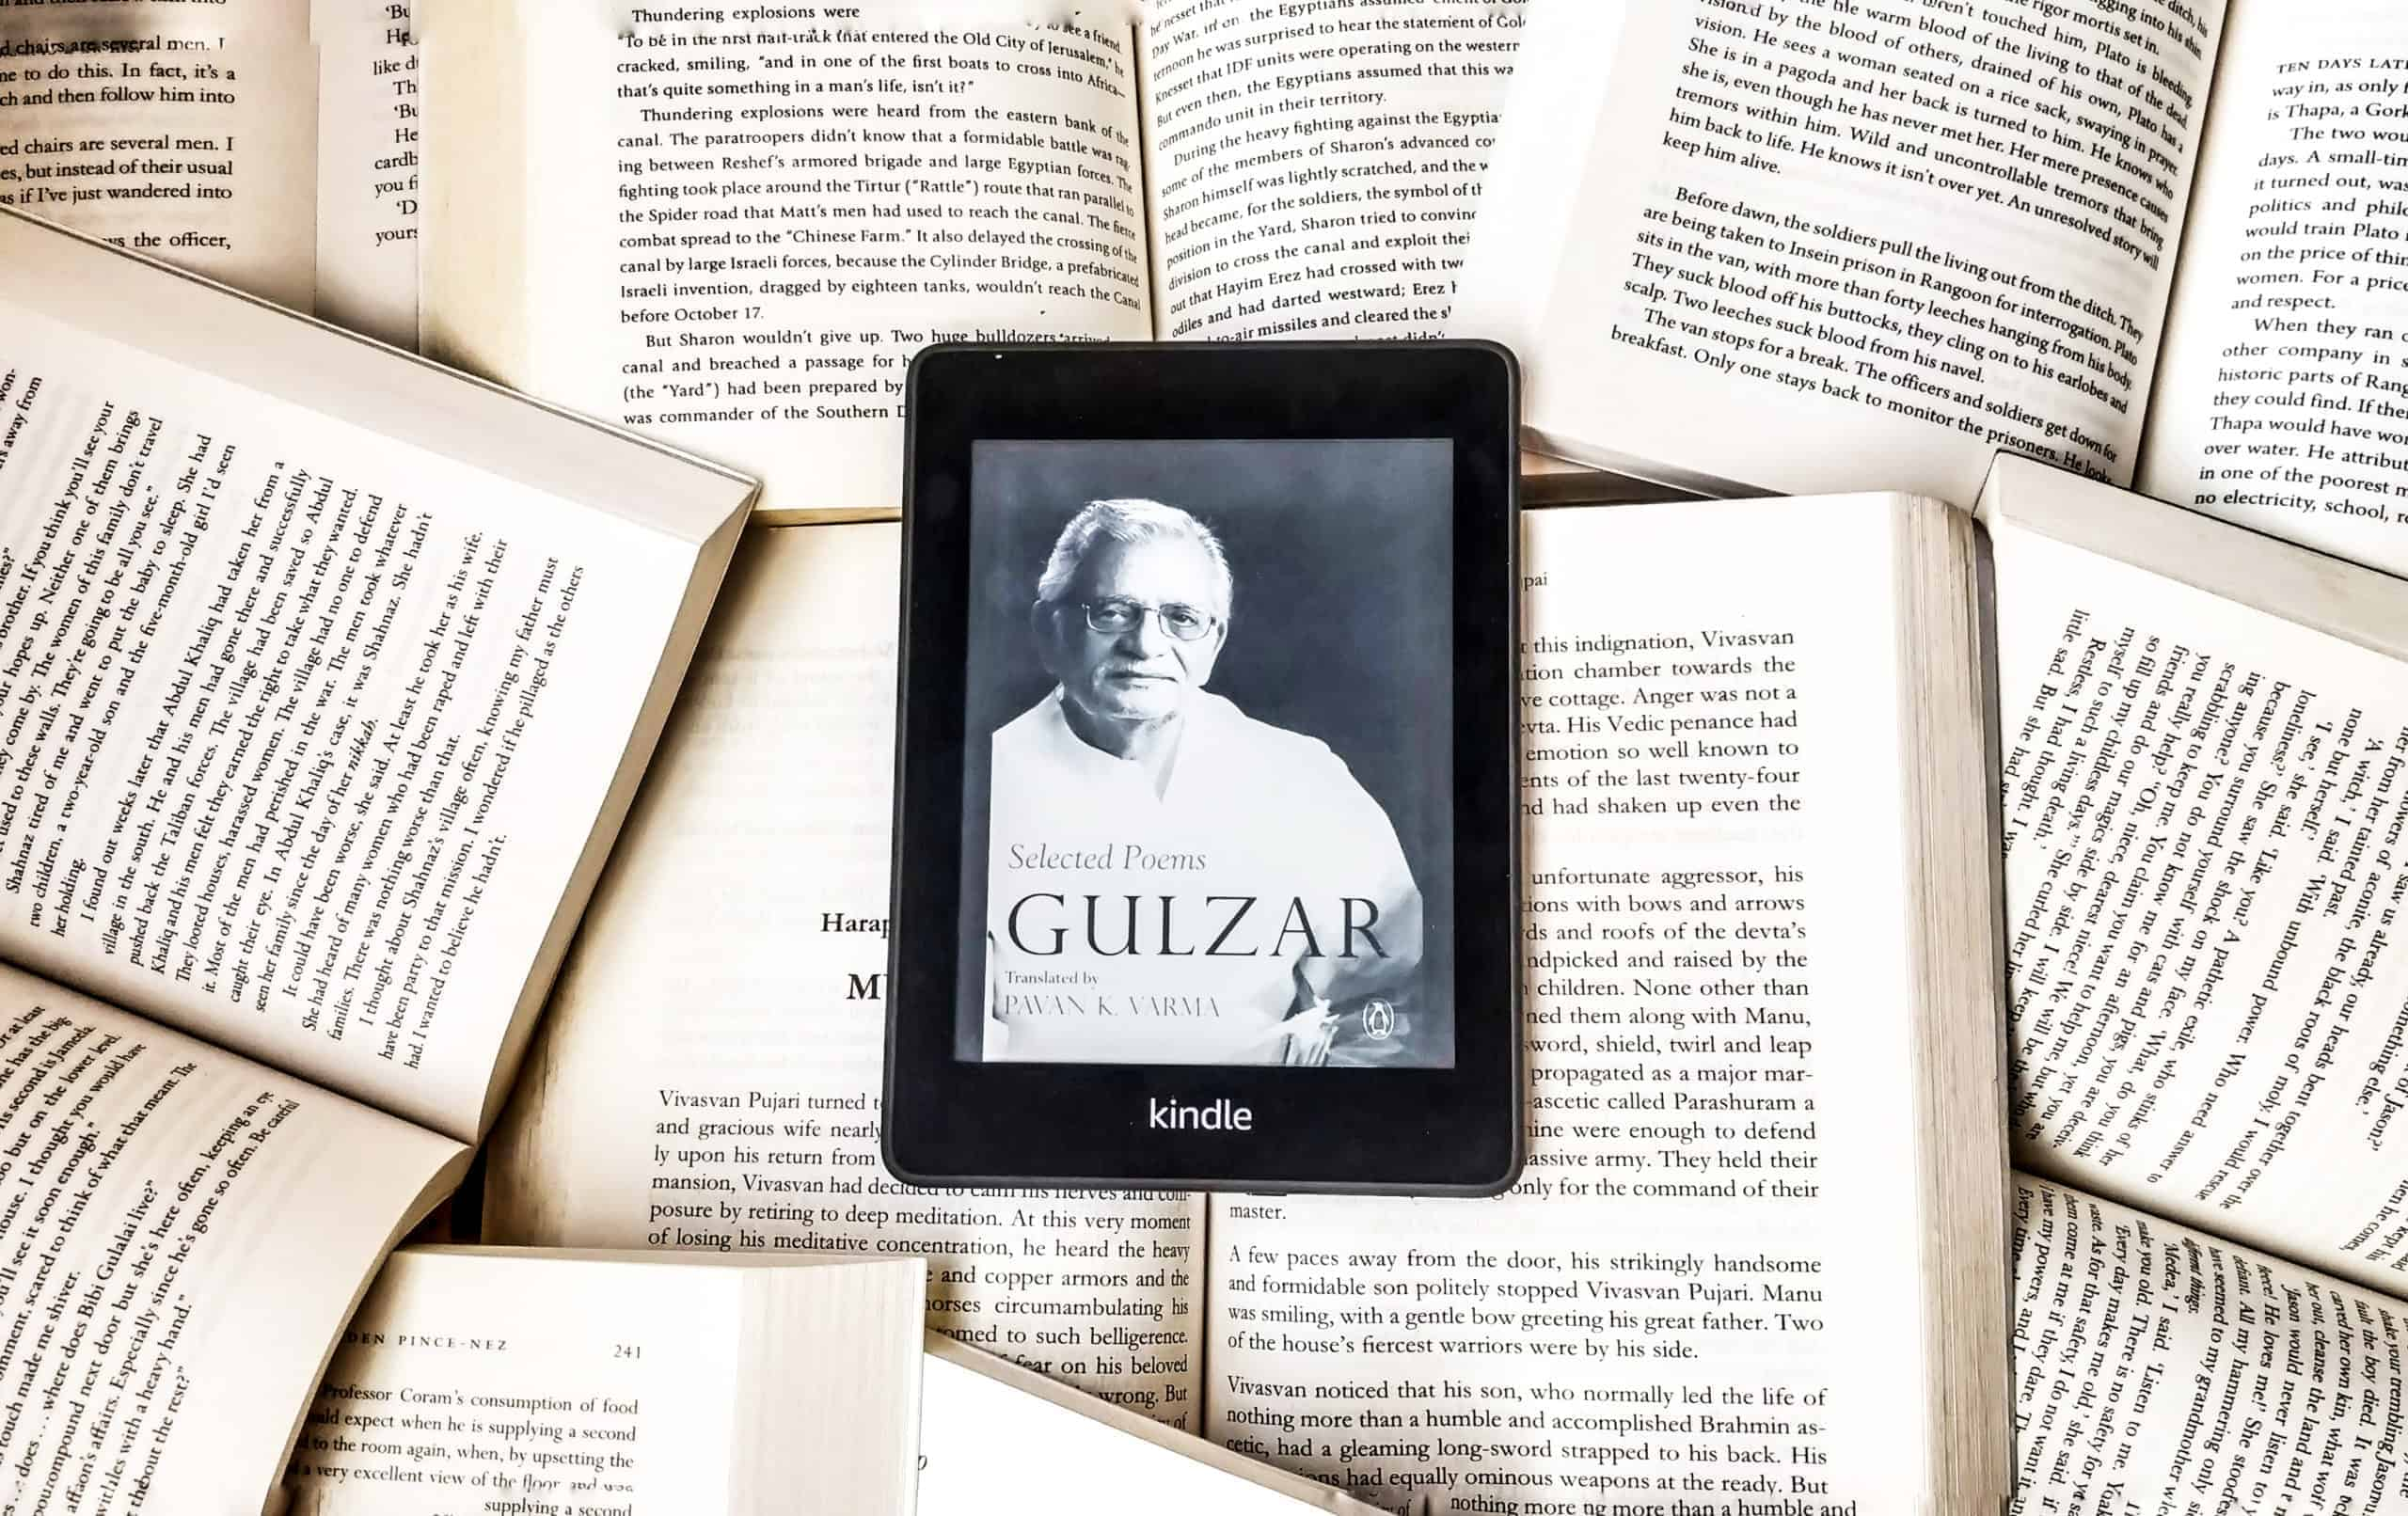 Selected Poems By Gulzar Poet Poetry Author Book Novel Review Rating